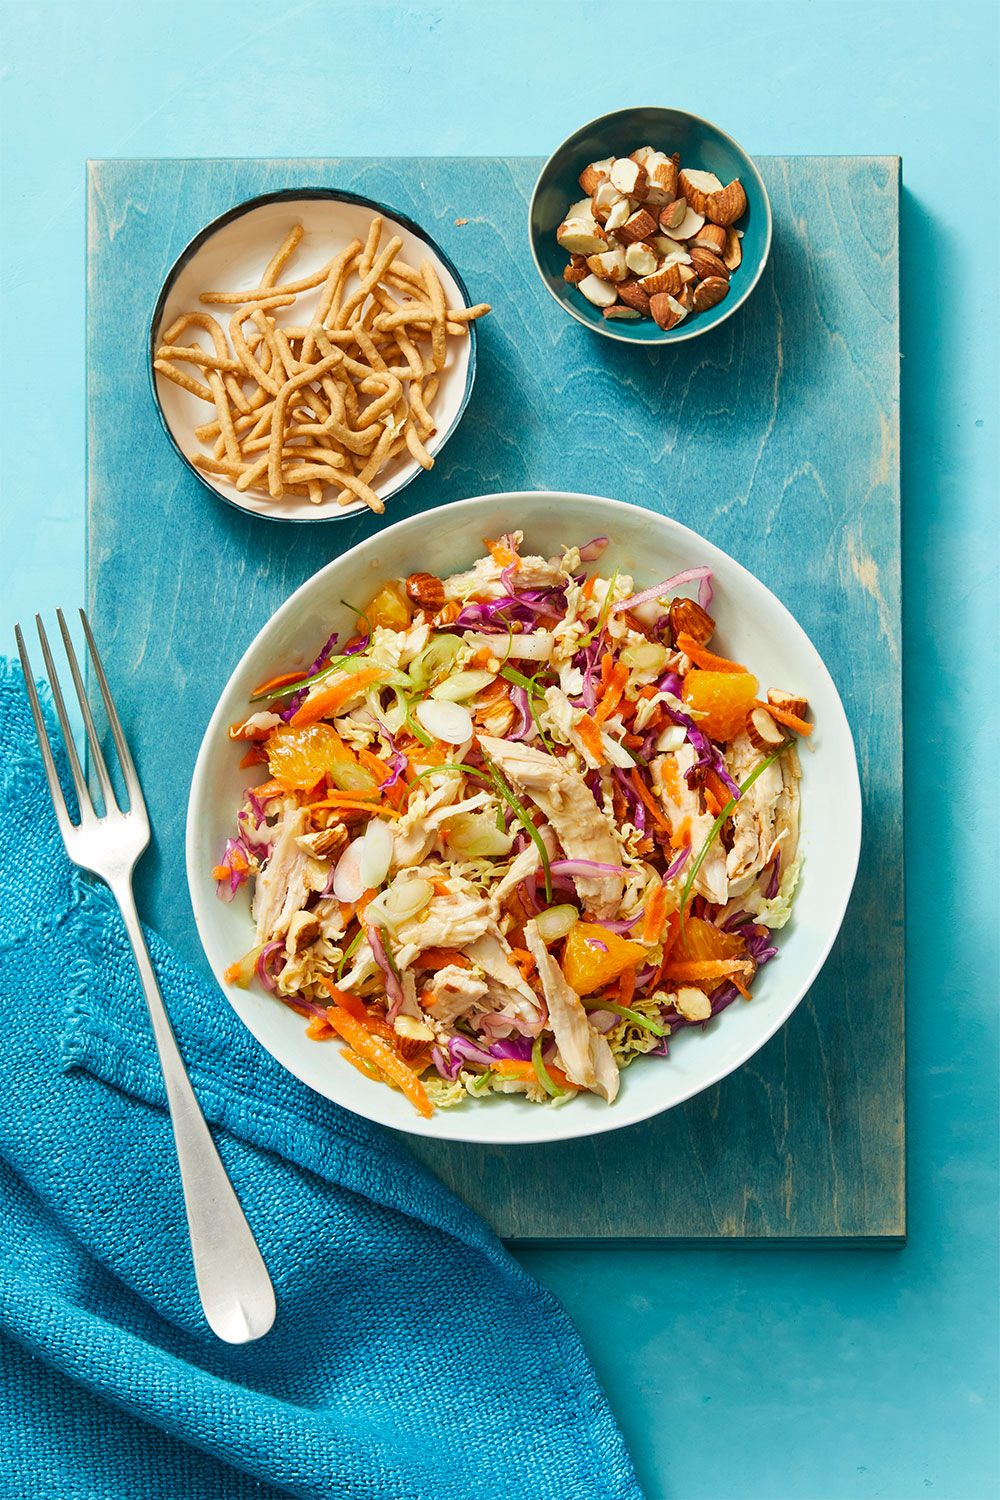 Crunchy Turkey Salad with Oranges